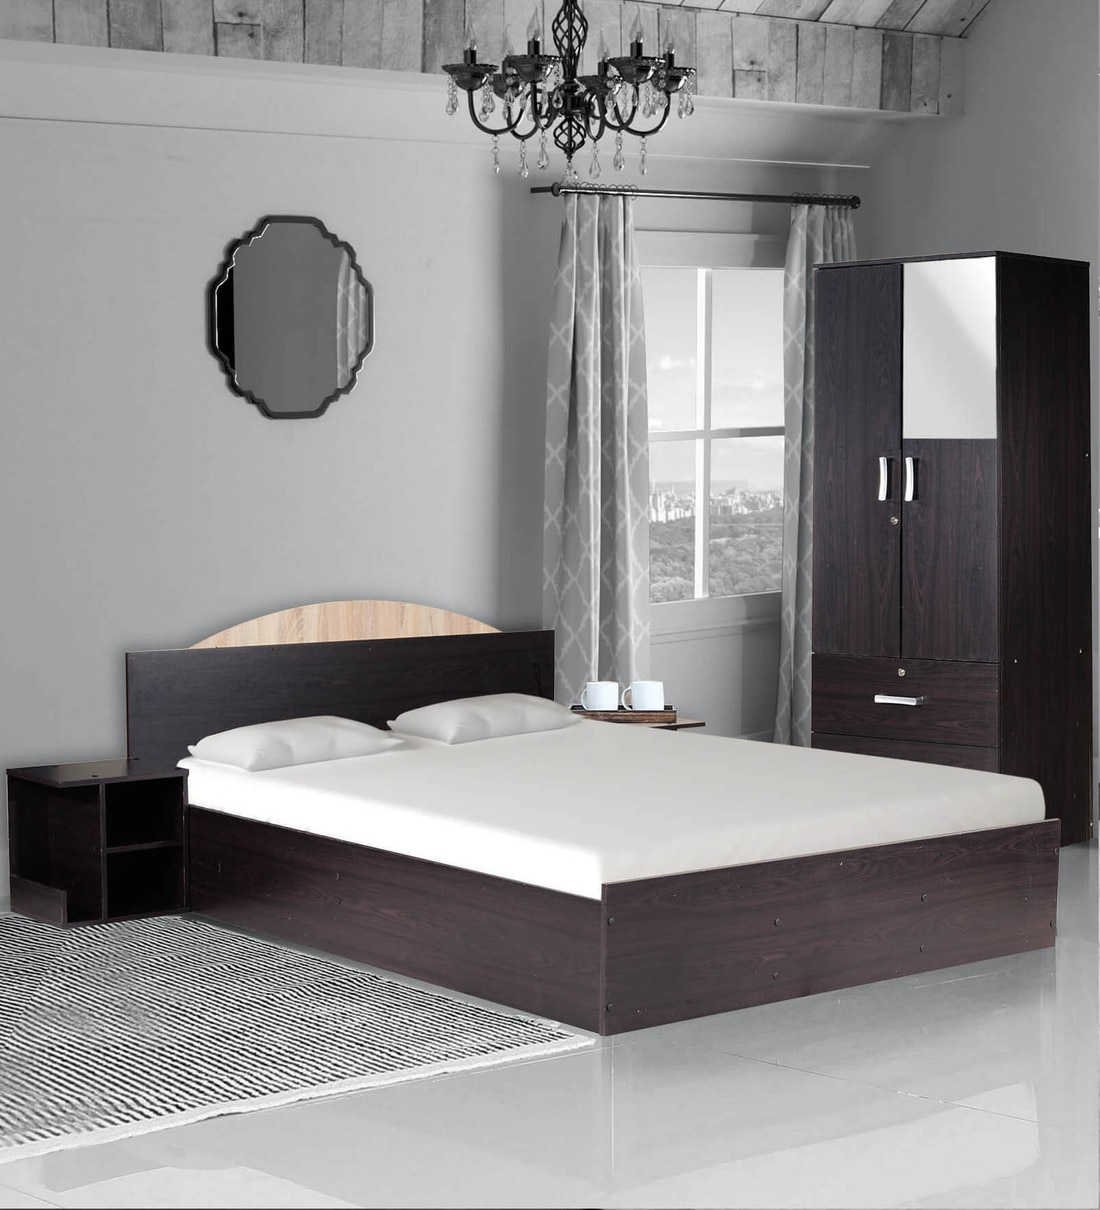 Buy Arisa Bedroom Set Queen Size Bed With Storage 2 Door Wardrobe Two Bedside Table In Wenge Finish By Mintwud Online Modern Queen Size Beds Beds Furniture Pepperfry Product